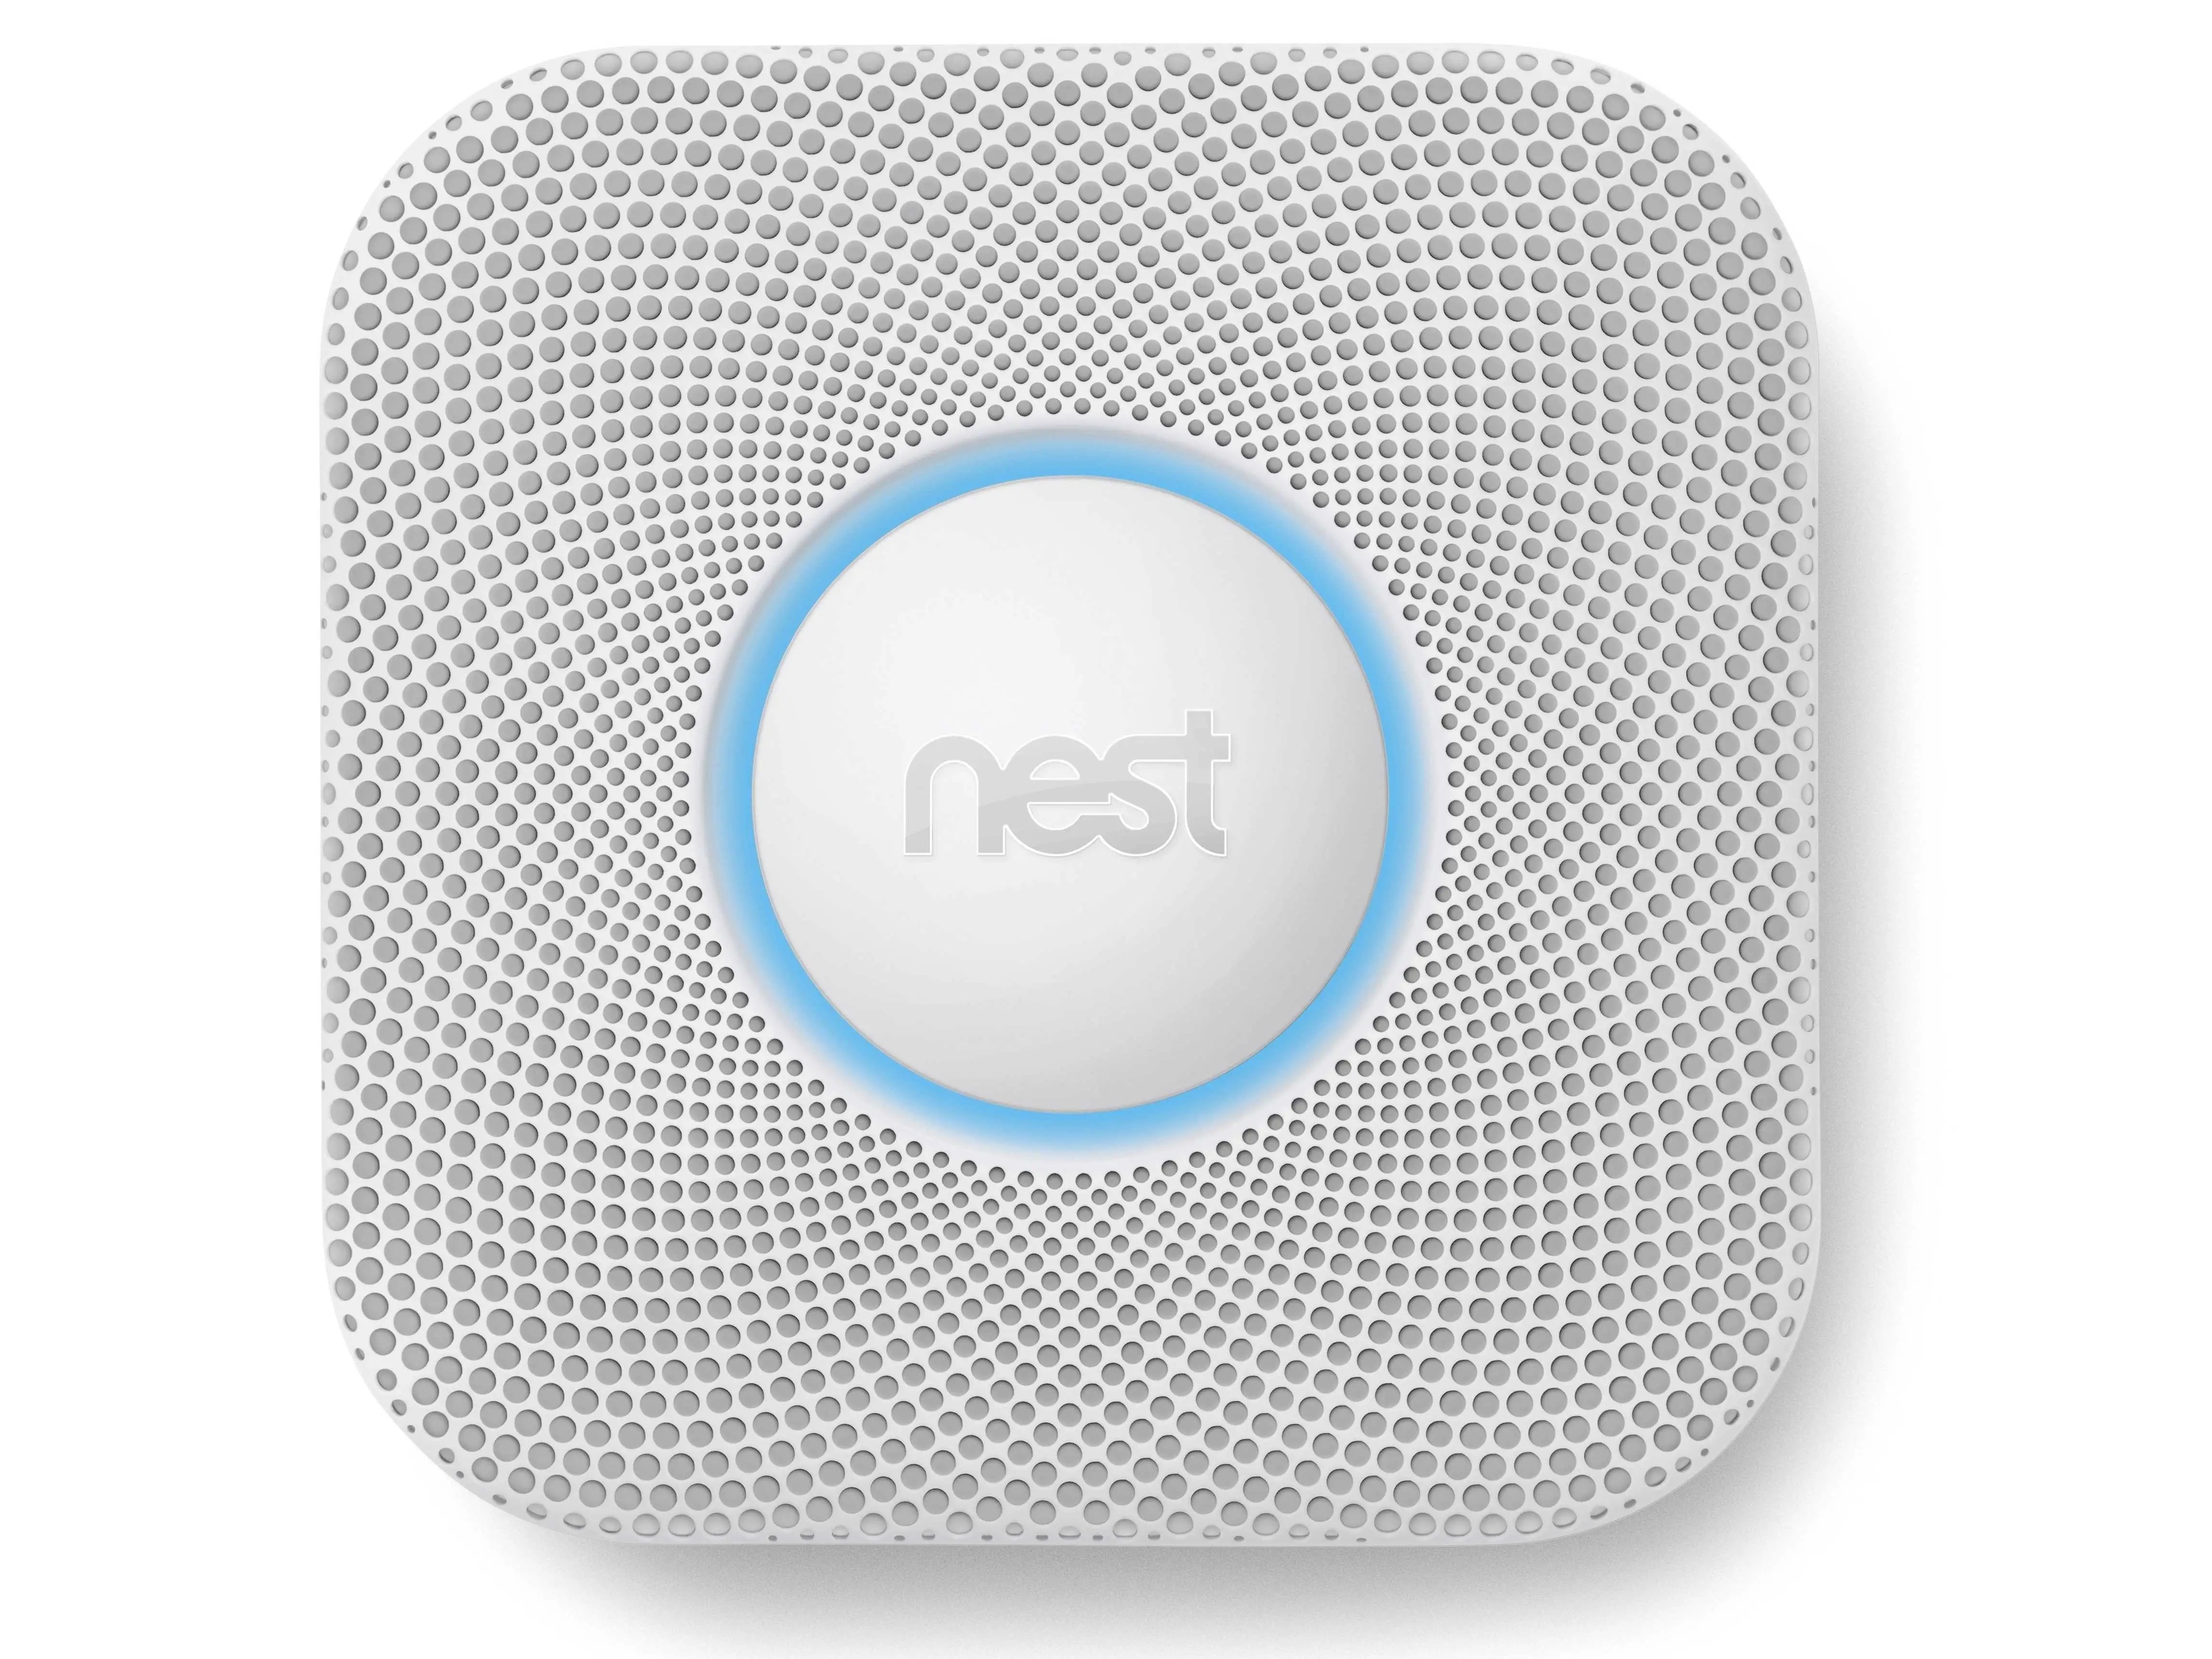 Nest Brandmelders Meet The Iphone Of Smoke Detectors Nest Protect A Us129